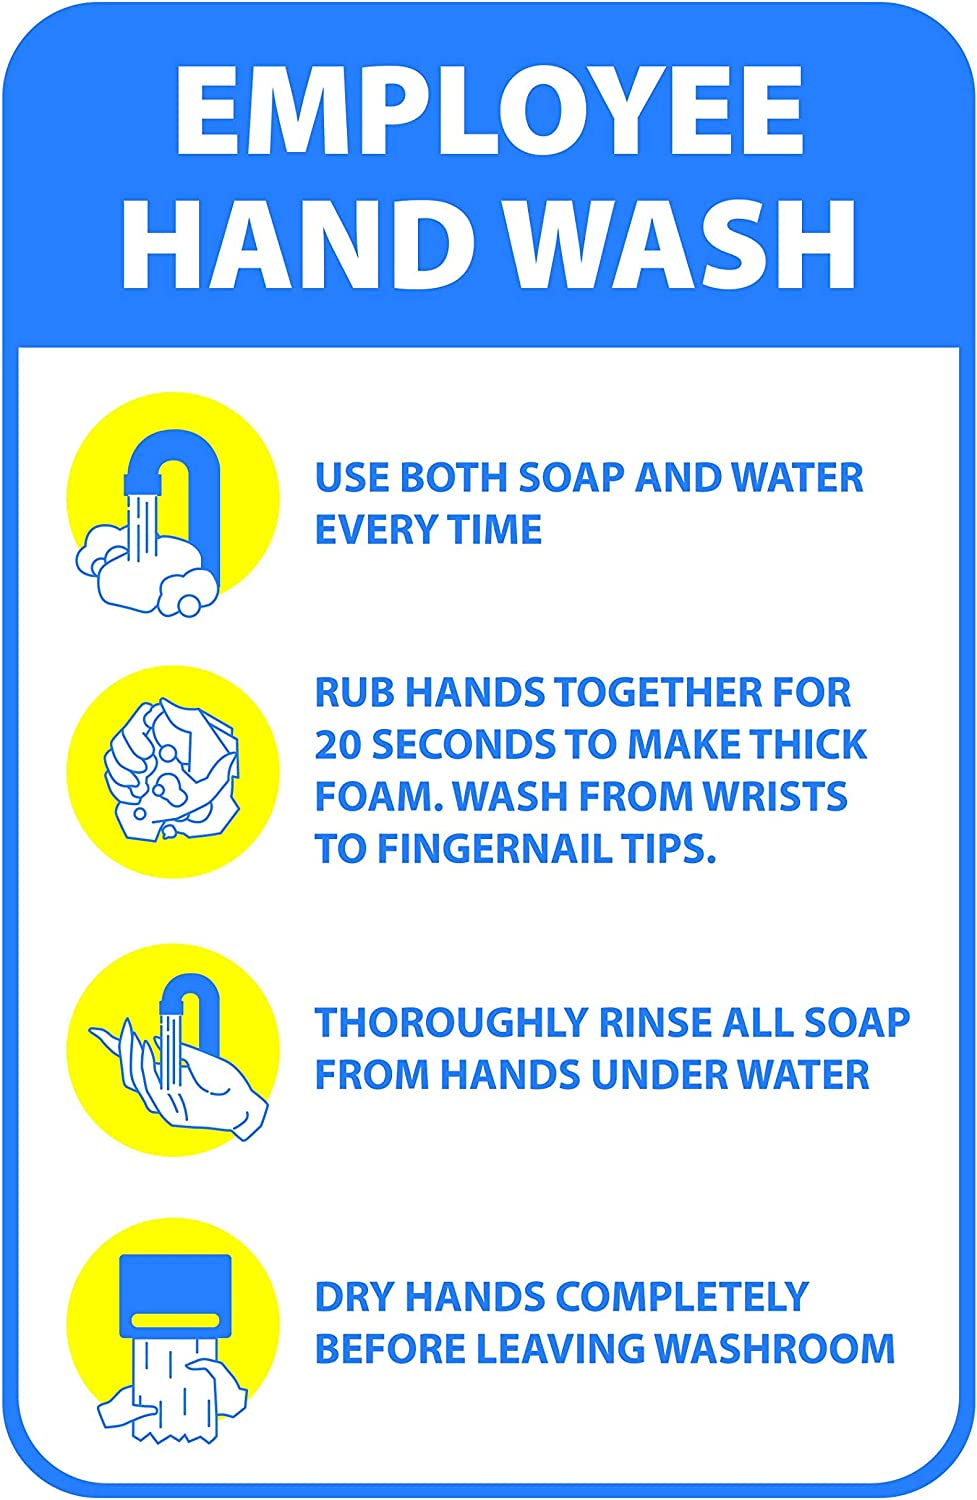 Employee Hand Wash Guide Sticker | Workplace Safety Signs for Public Restrooms, Restaurants, and Hospitals (Pack of 6)